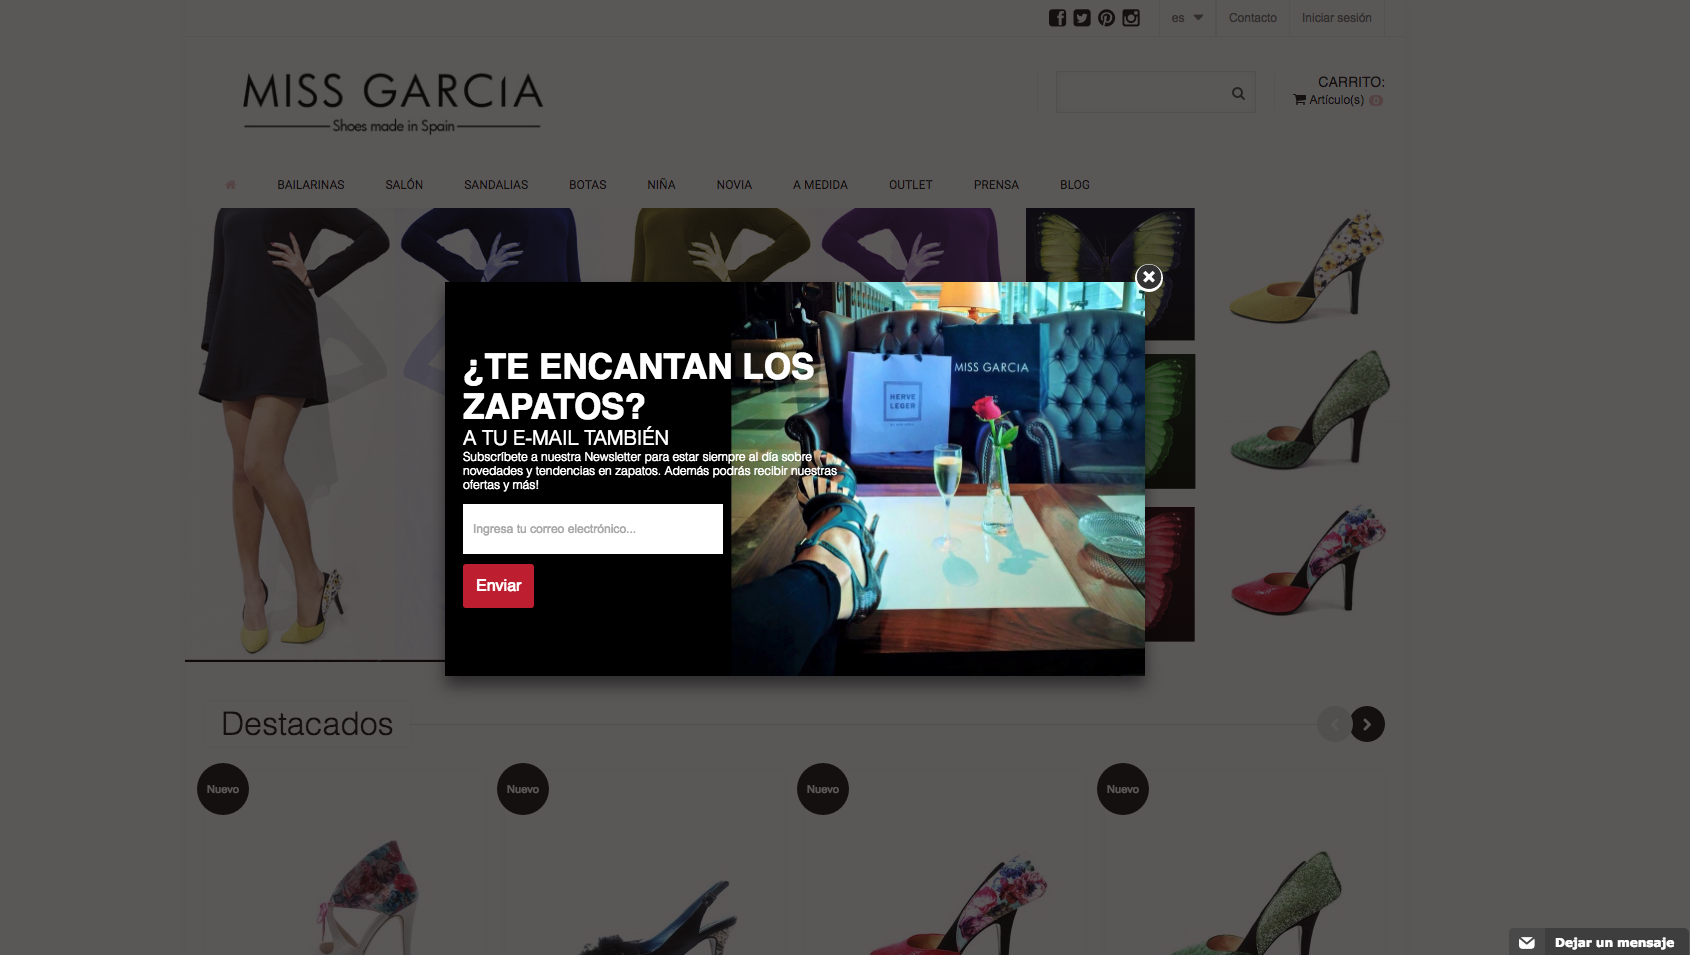 Newsletter-en-un-eCommerce-de-Moda-MissGarcia-Marketiniana-06